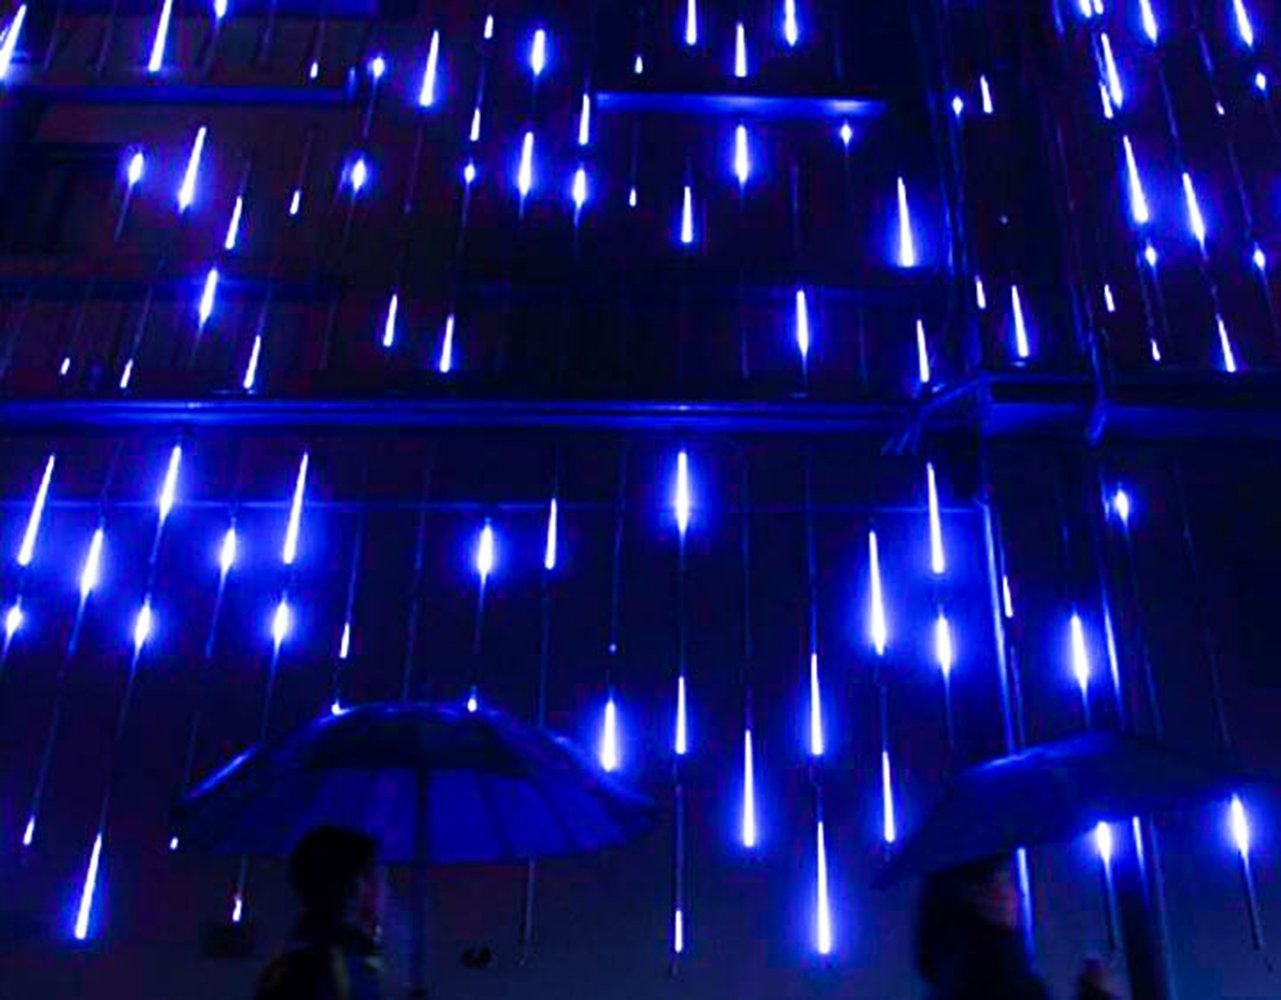 Adecorty Meteor Shower Lights Falling Rain 30cm Outdoor Christmas Light Wiring 8 Tube 144 Leds Drop Icicle String For Holiday